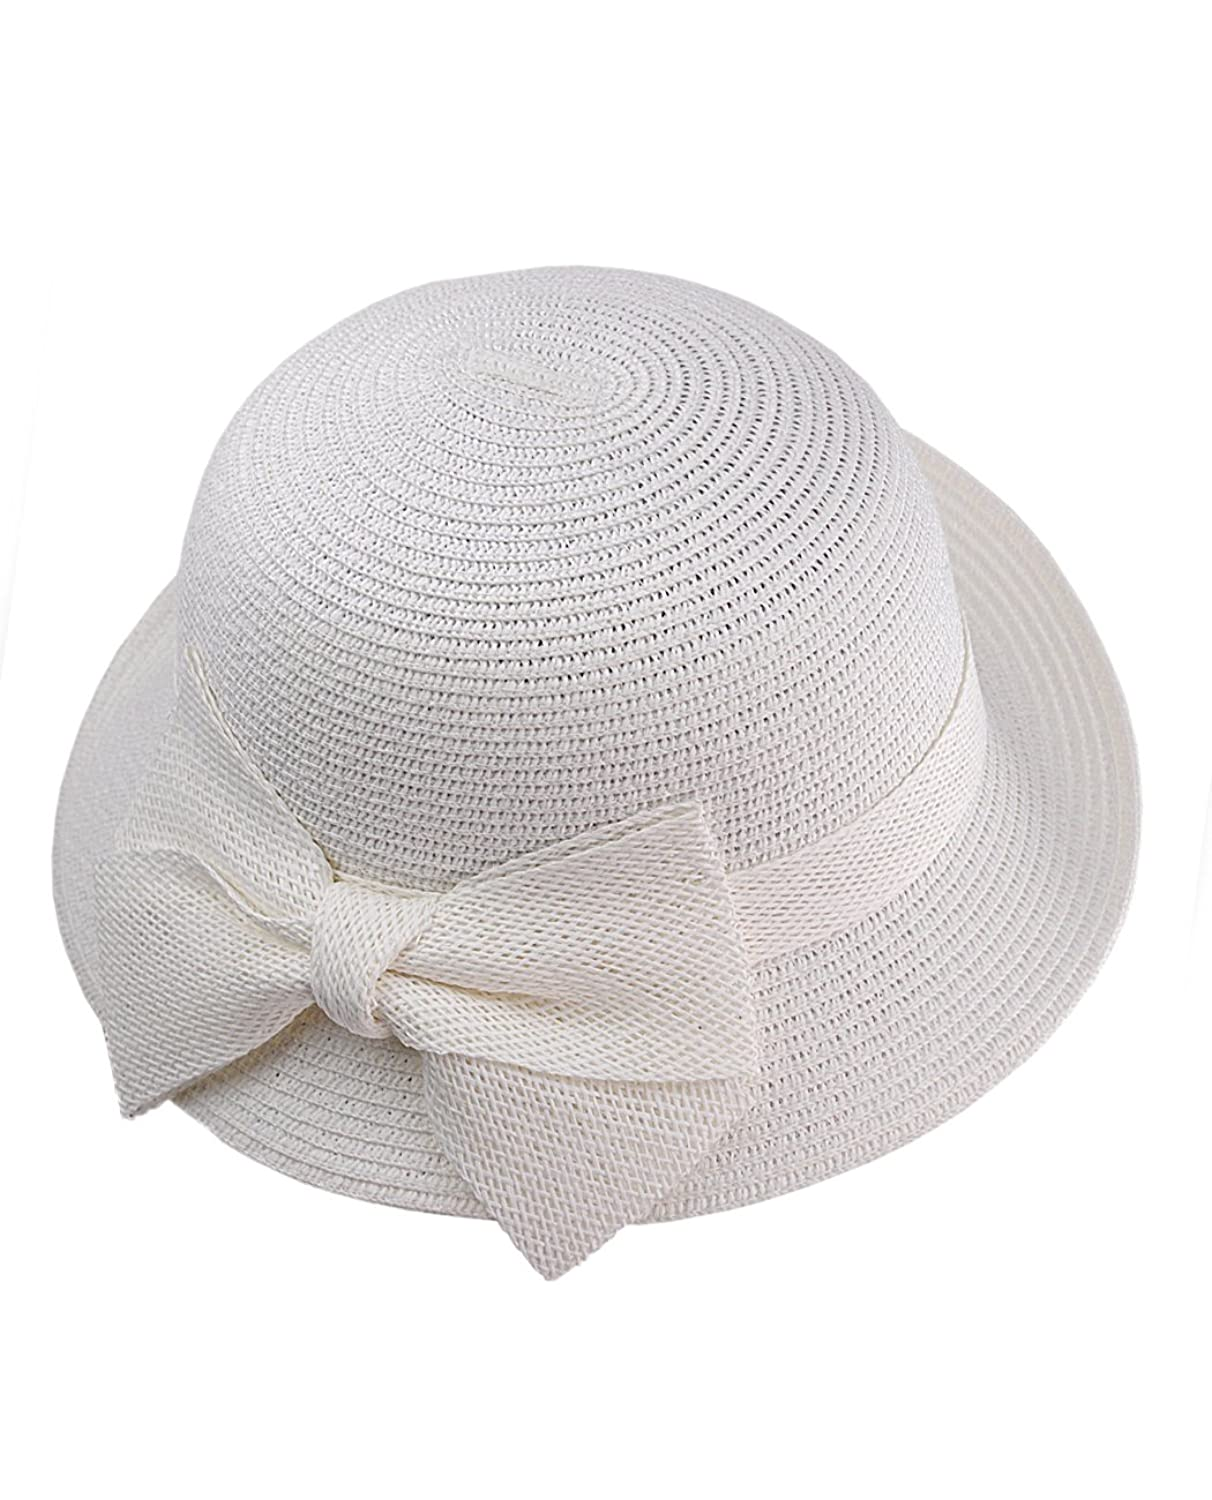 Bow Flip Cloche Bucket Hat w/ Woven Bow Accent $14.98 AT vintagedancer.com